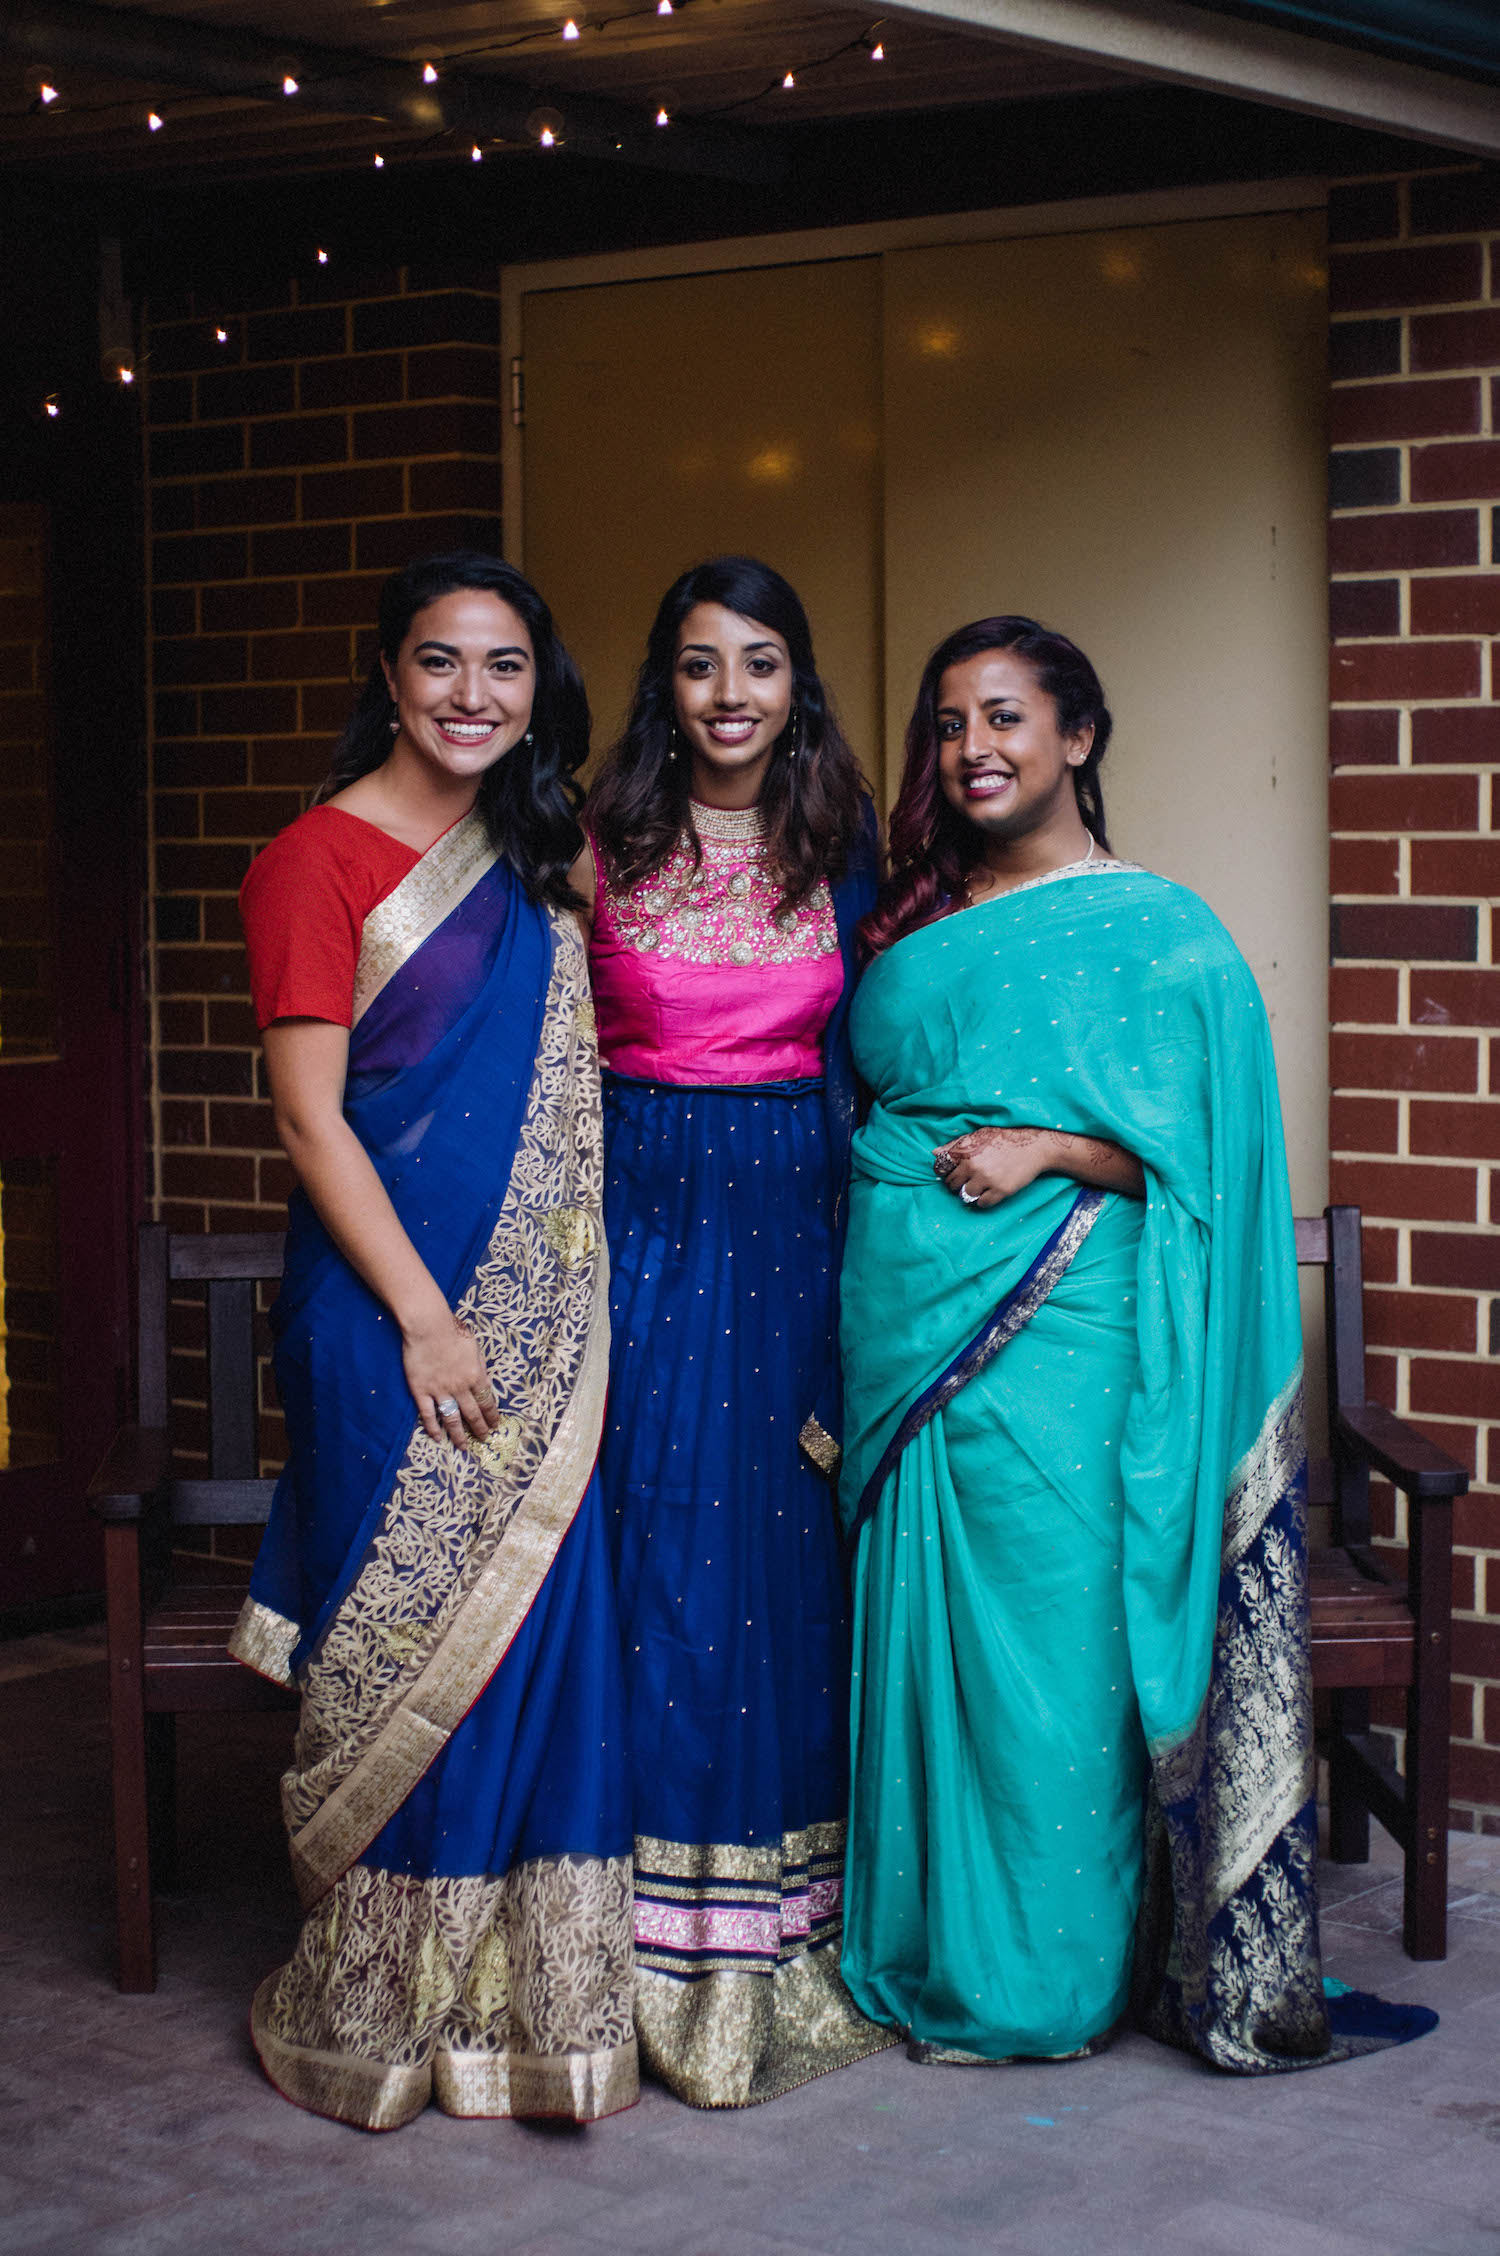 The bride & her bridesmaids in their Saris at a wedding reception in Subiaco, Australia